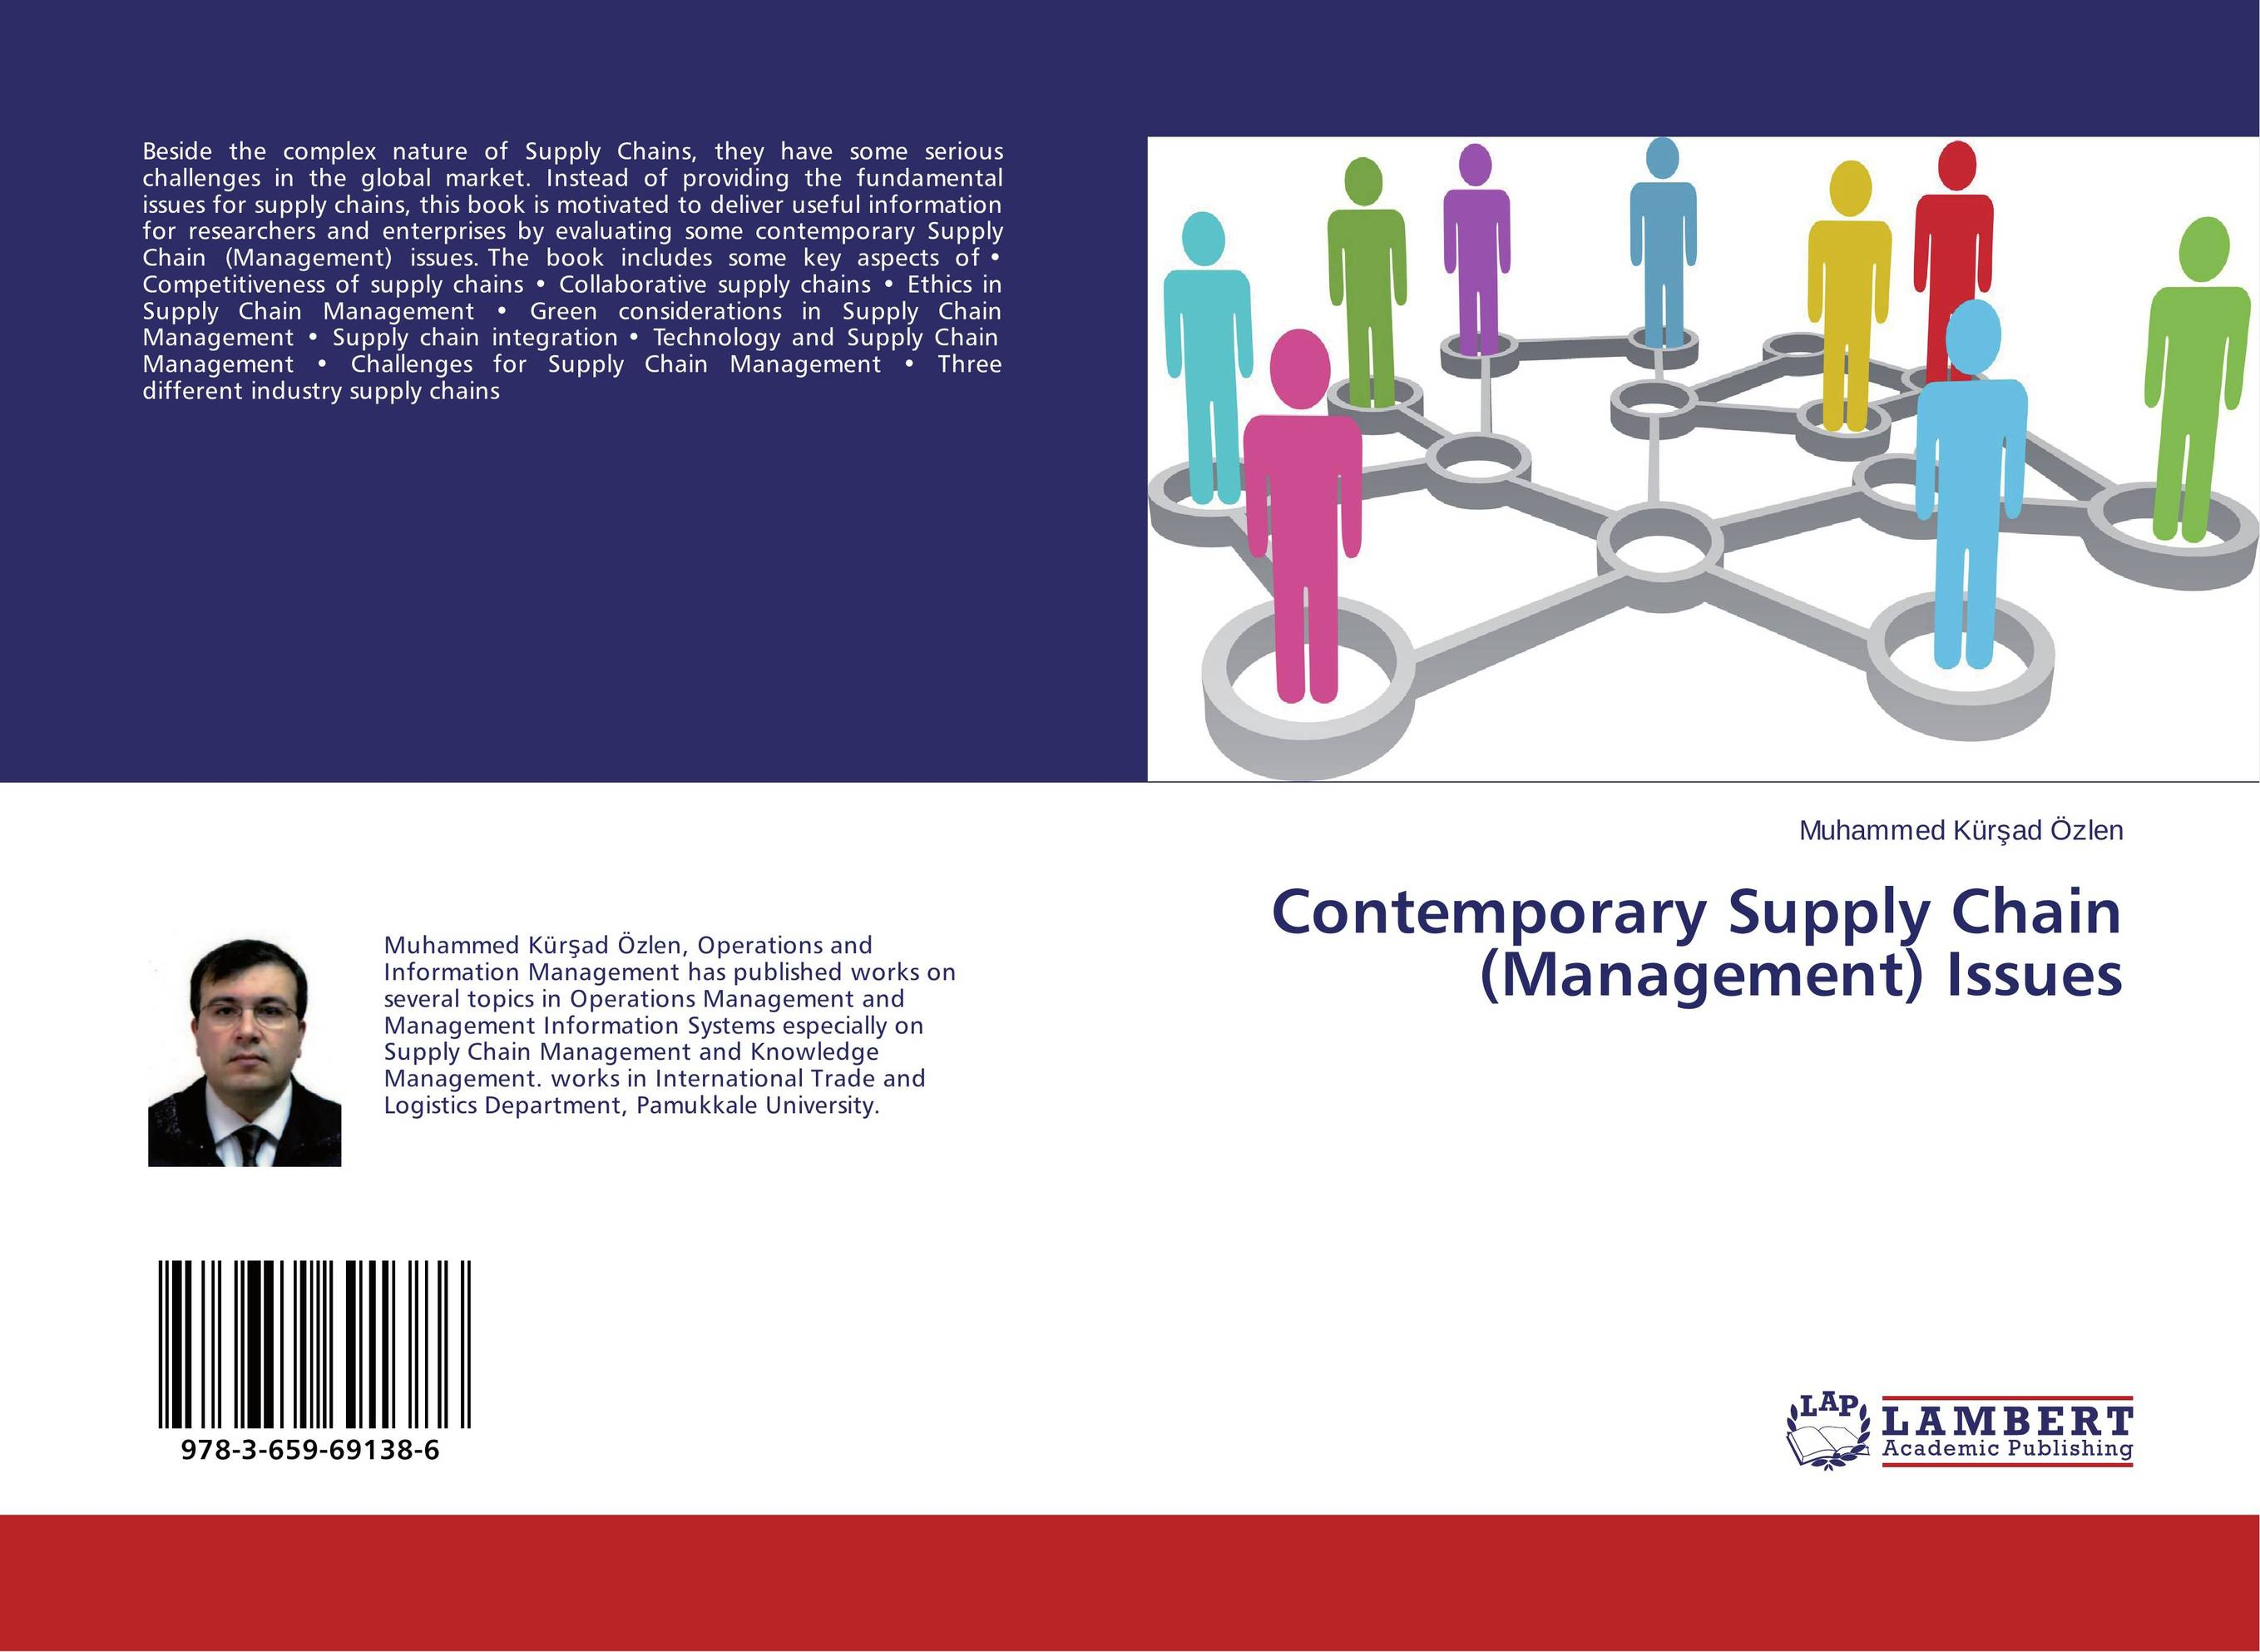 Contemporary Supply Chain (Management) Issues supply chain managemet